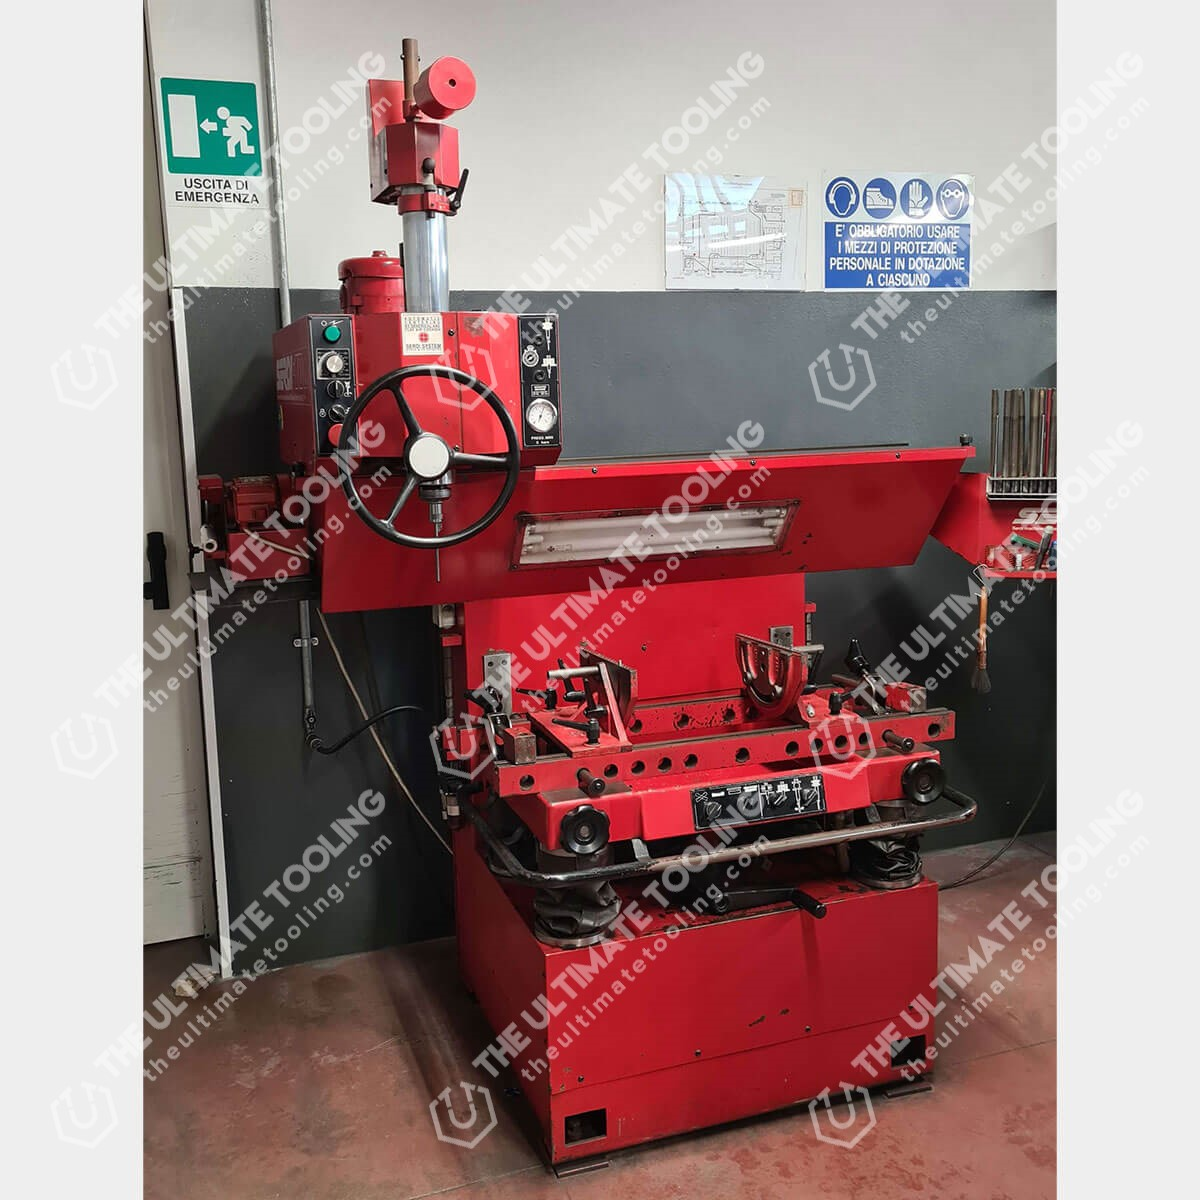 SERDI 100 Used Valve Seat Cutting Machine